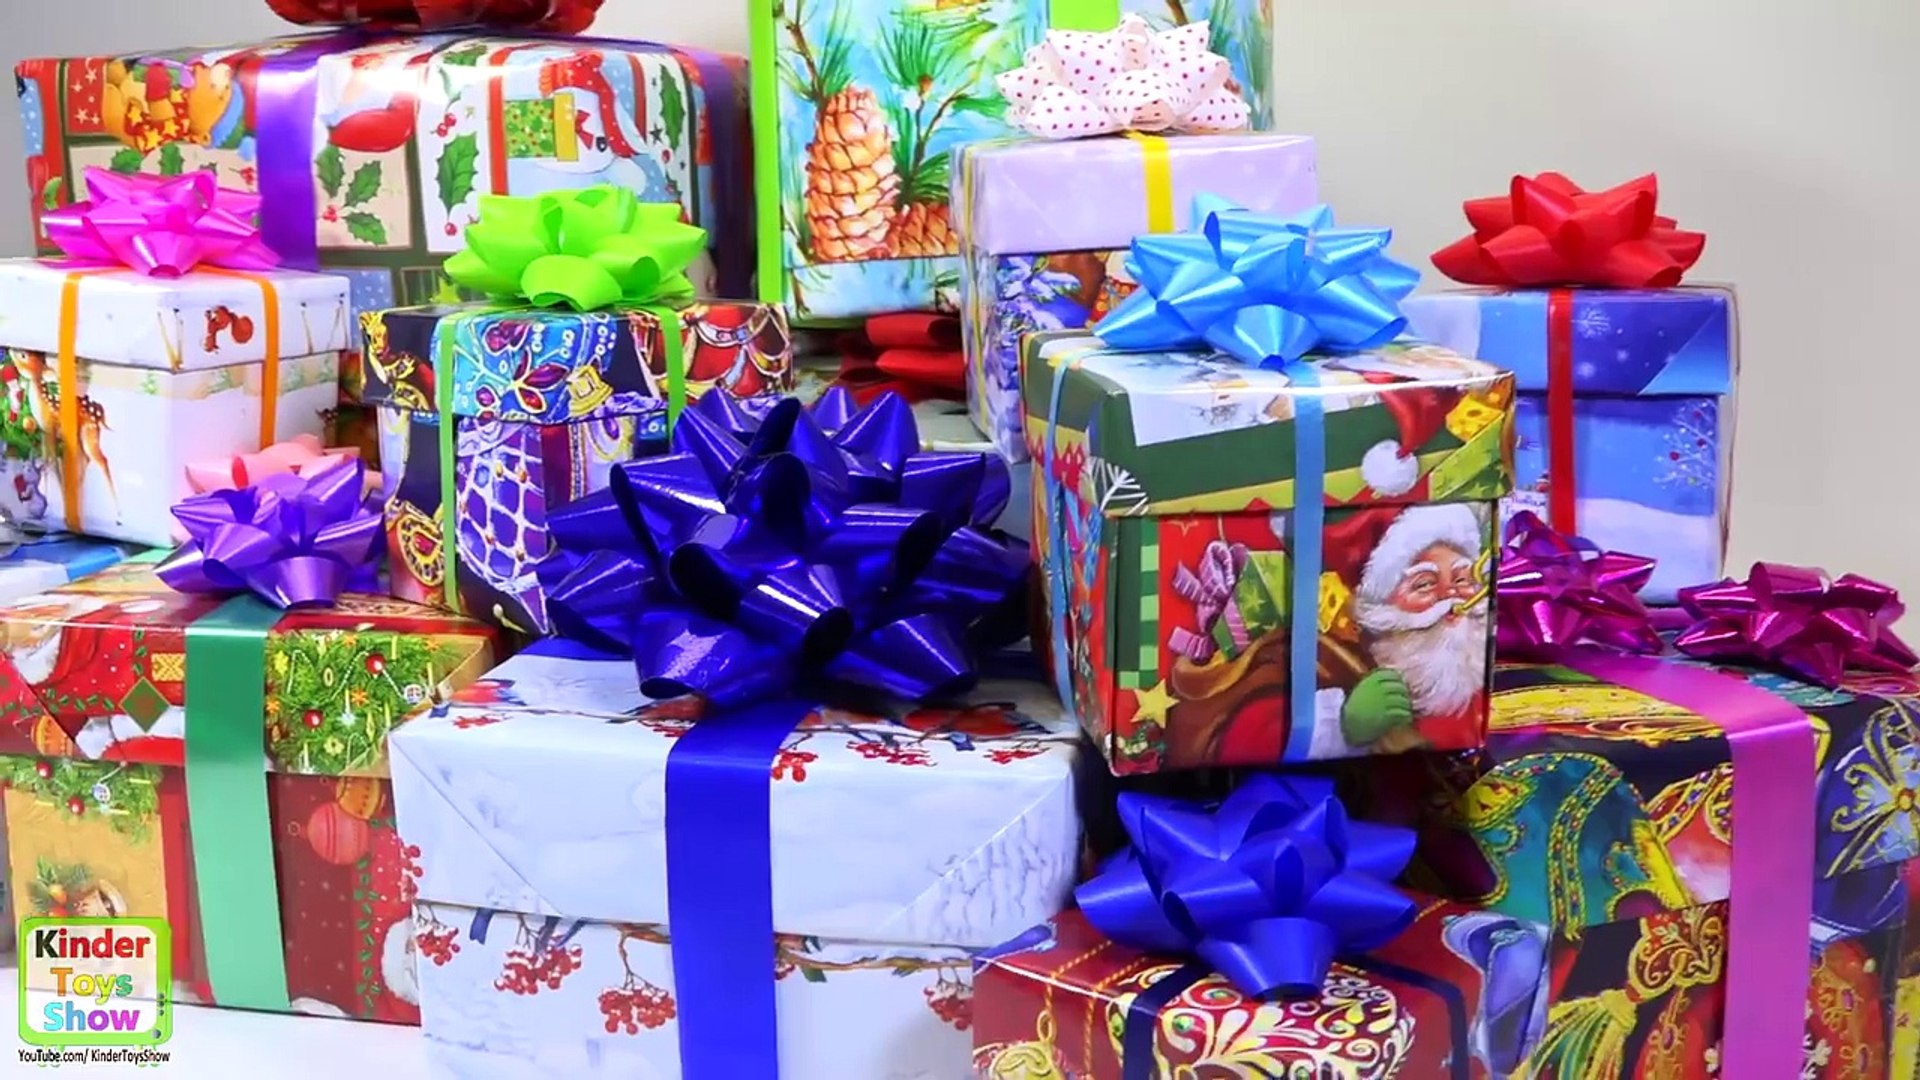 Christmas Surprise Presents for Kids, 14 Gifts unboxing, a lot of Kinder Surprise inside